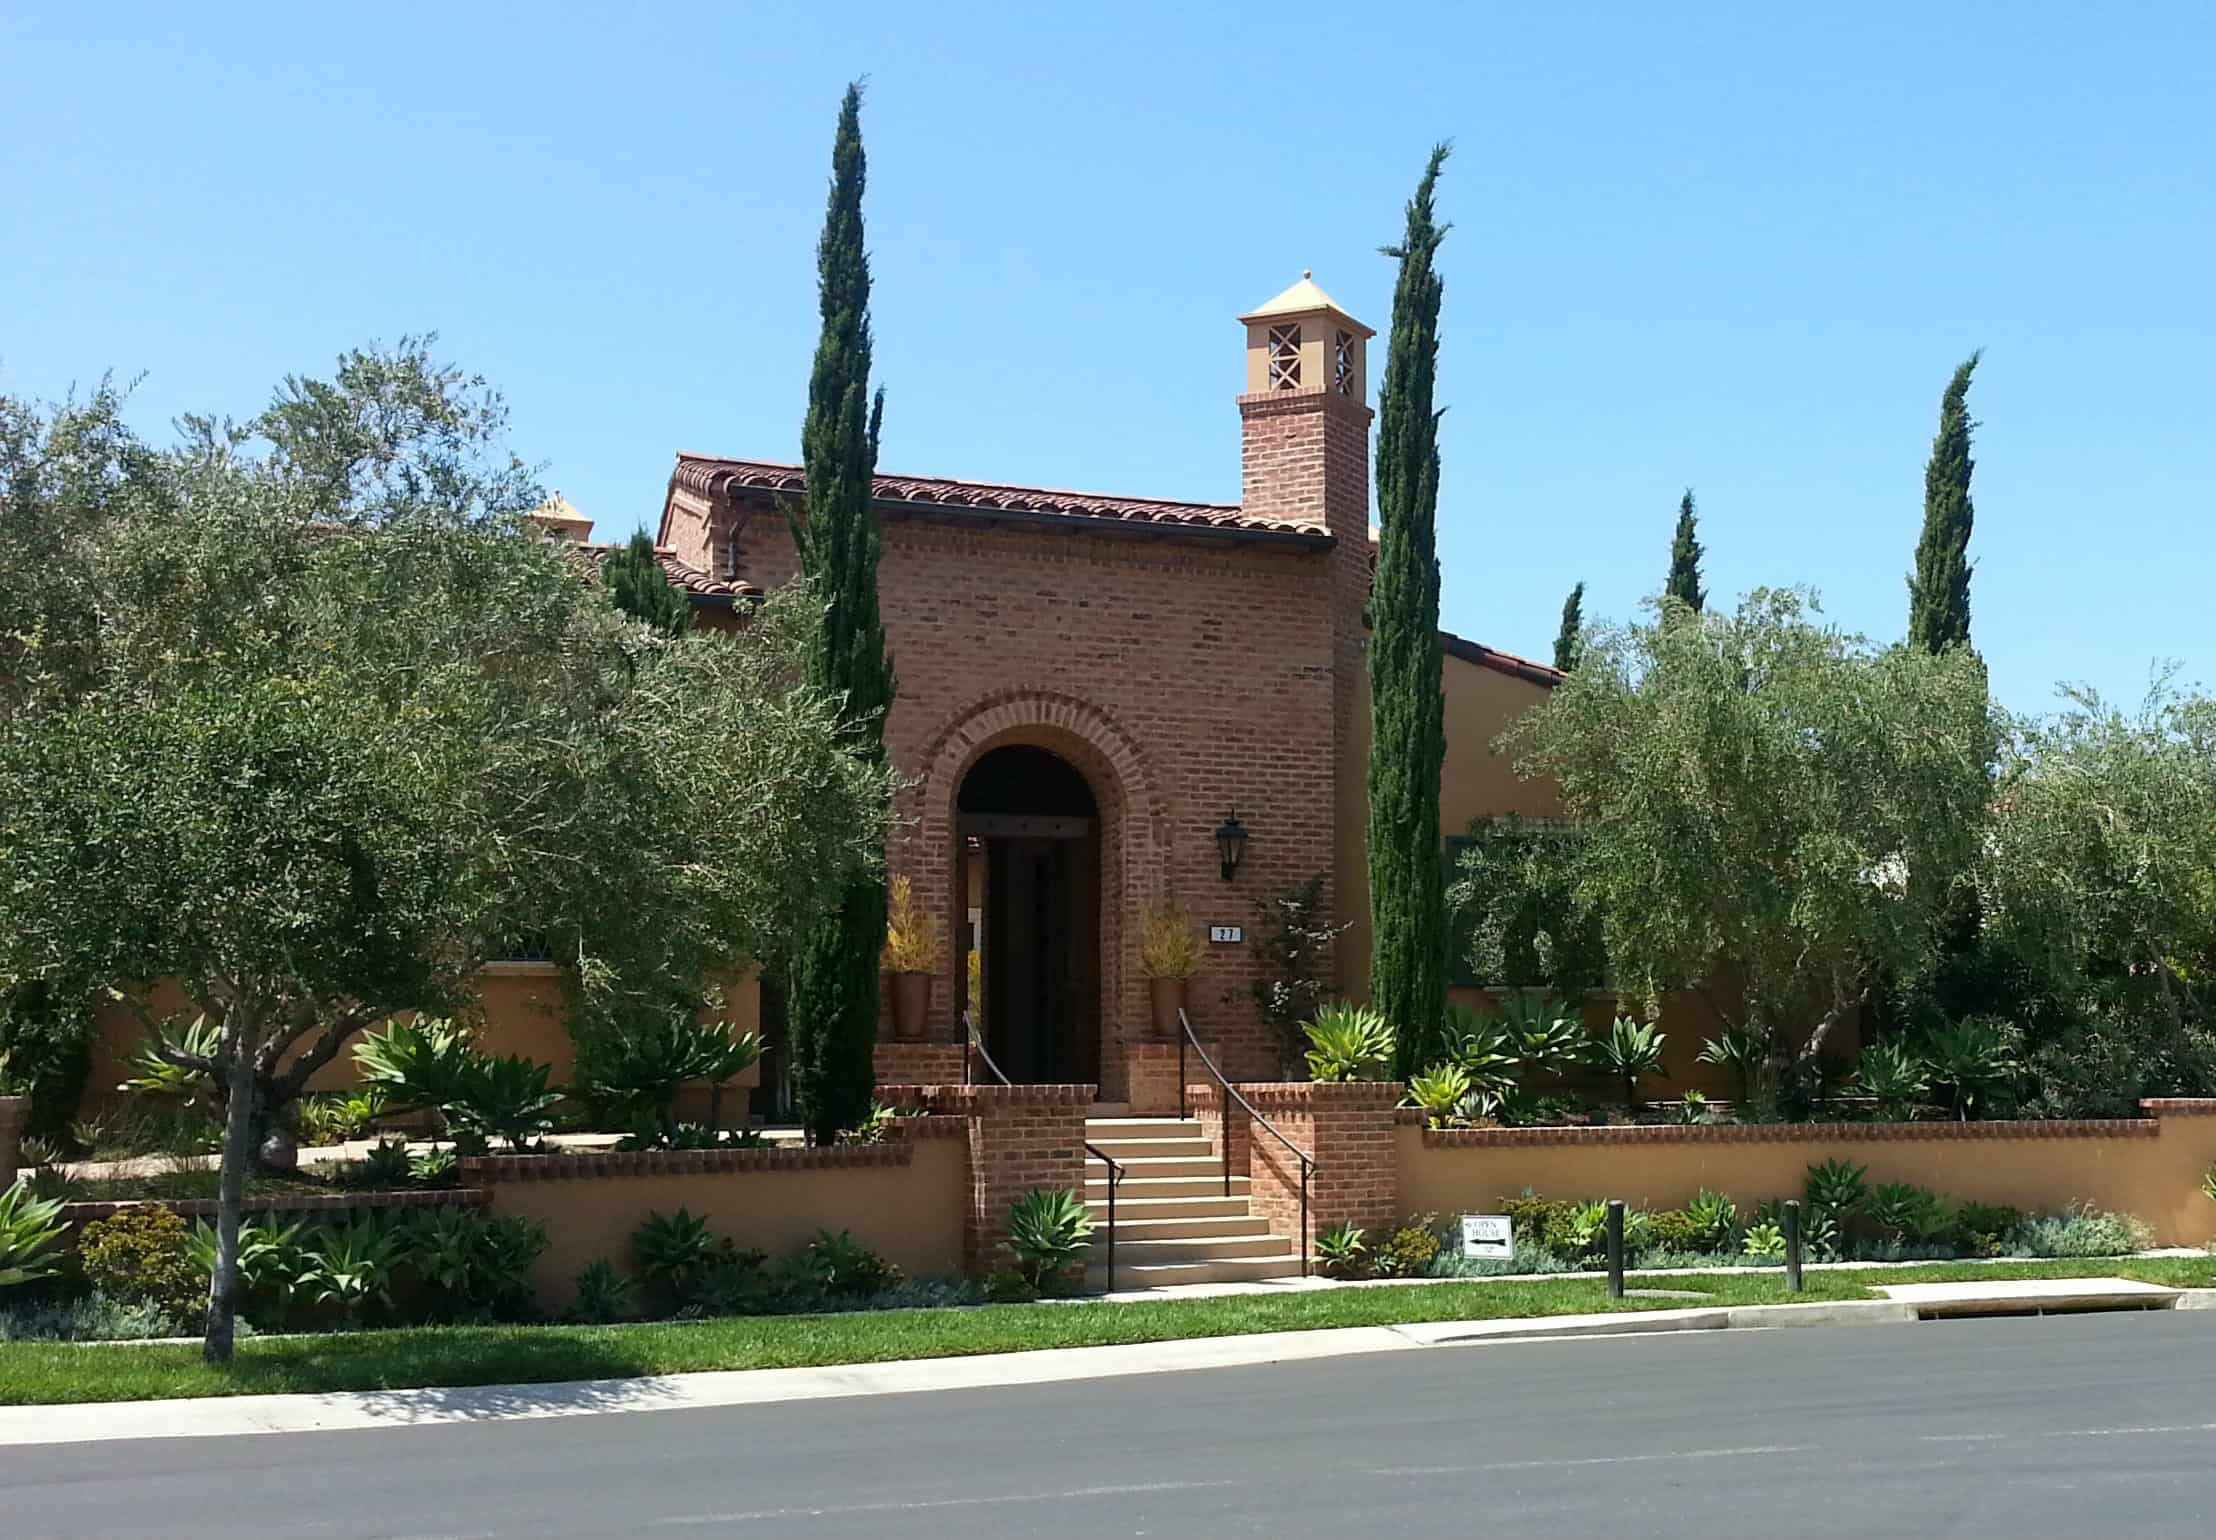 Southern california mansions for sale california mansions for Southern california custom home builders